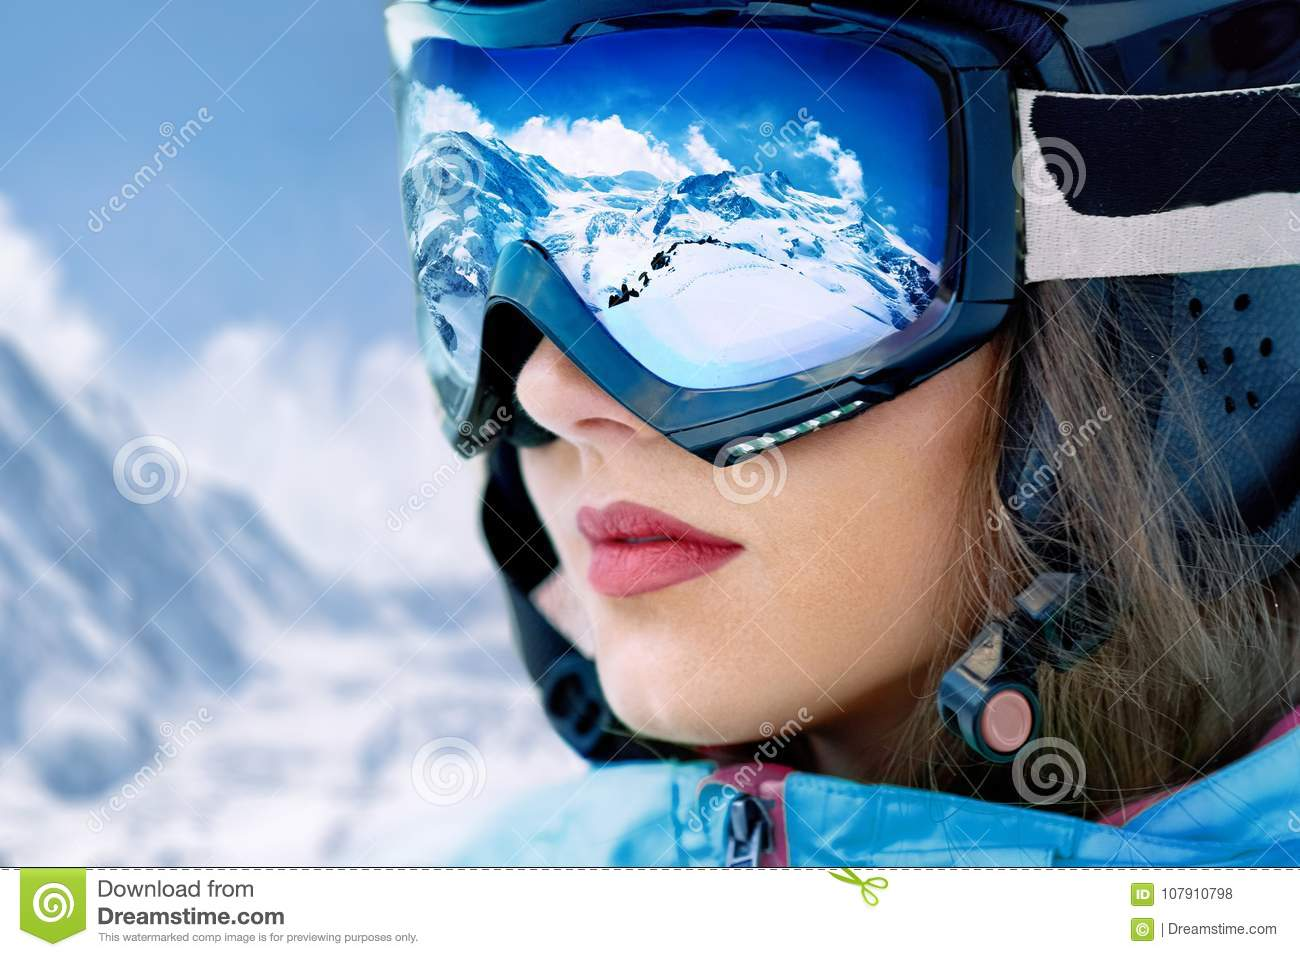 Portrait of young woman at the ski resort on the background of mountains and blue sky.A mountain range reflected in the ski mask.